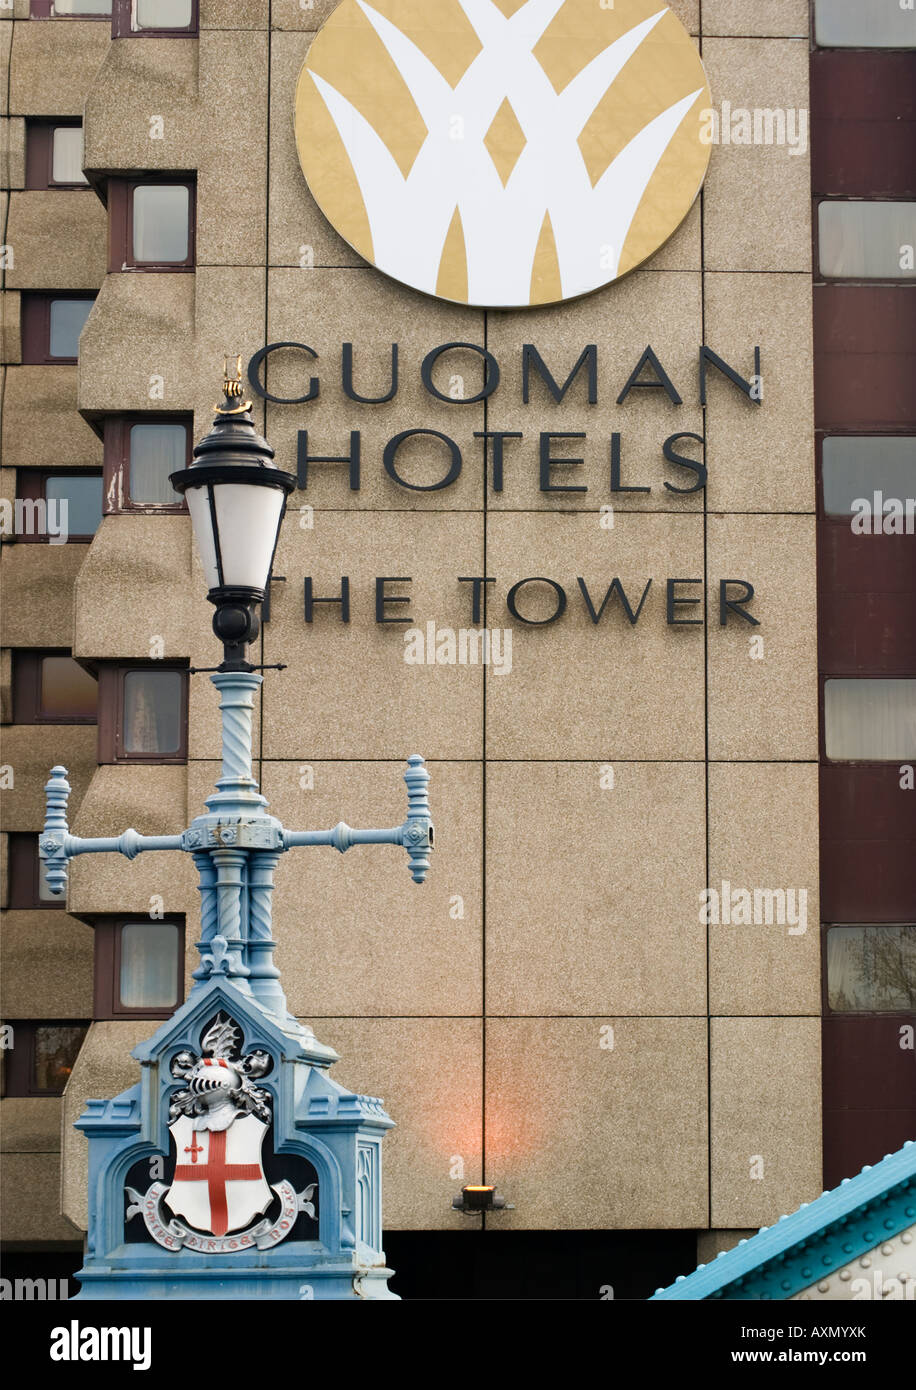 The Tower, Guoman Hotels, London Stock Photo